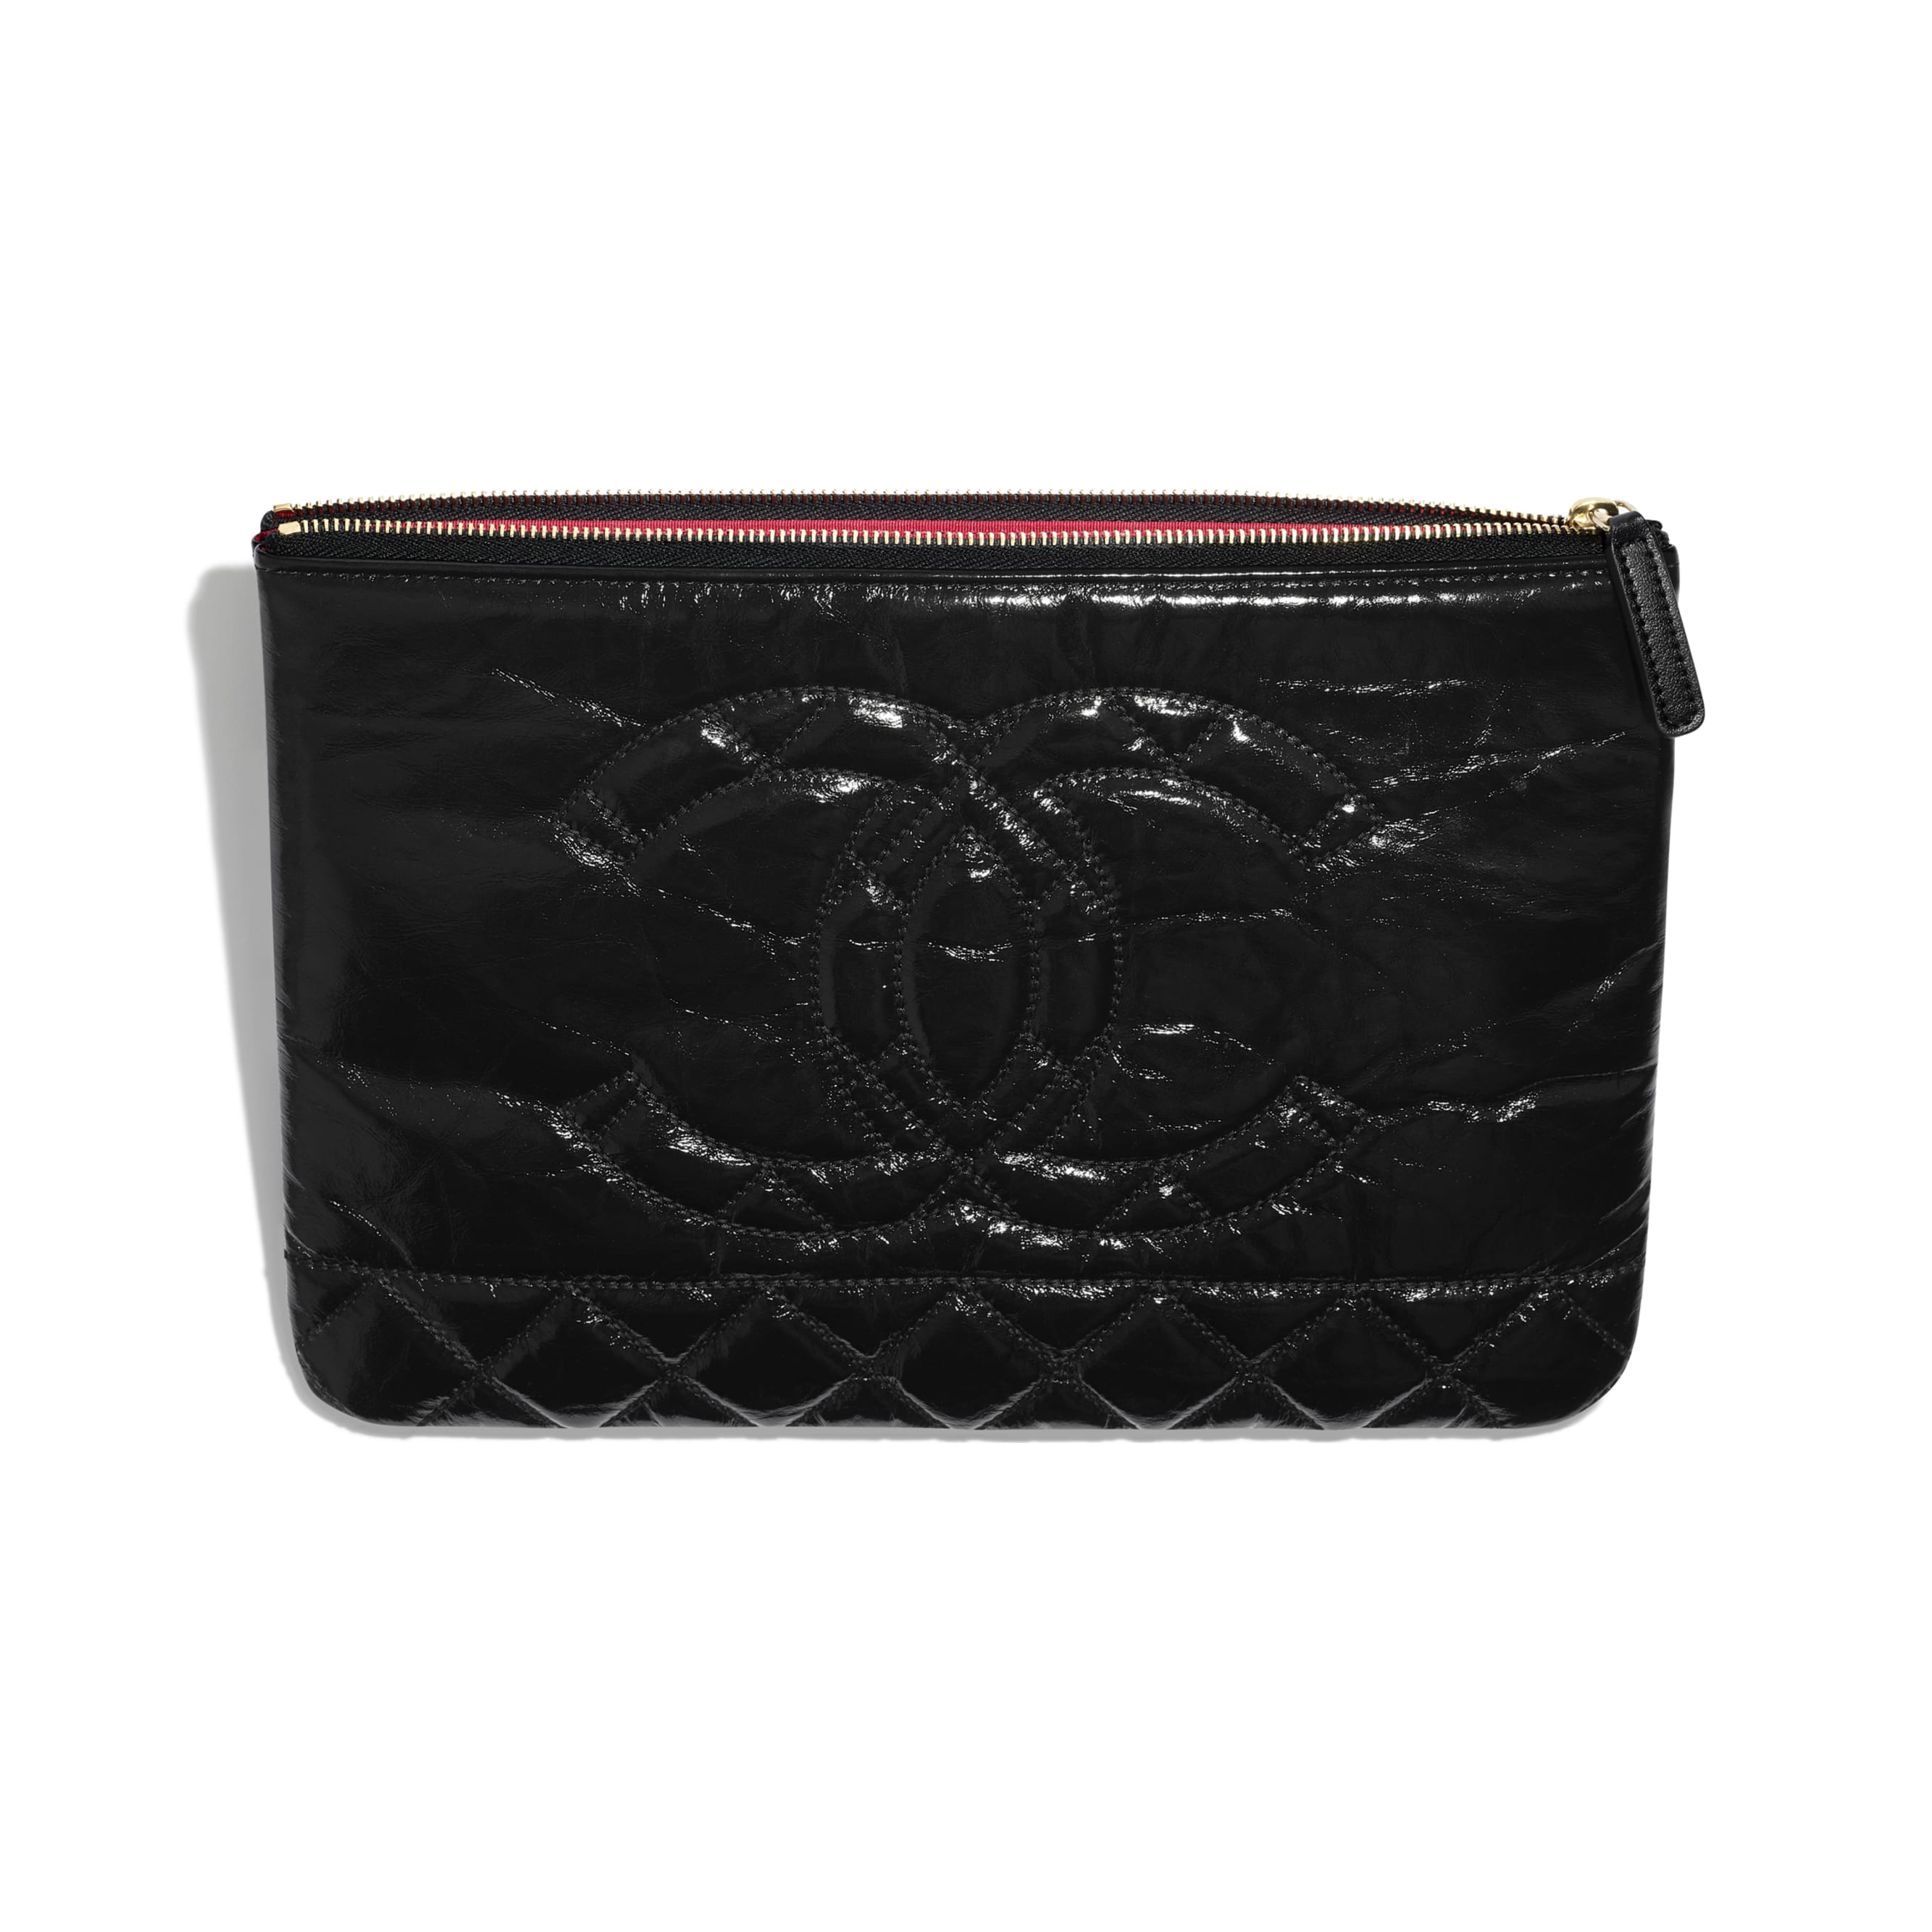 Pouch - Black - Shiny Aged Calfskin, Gold-Tone & Silver-Tone Metal - CHANEL - Other view - see standard sized version